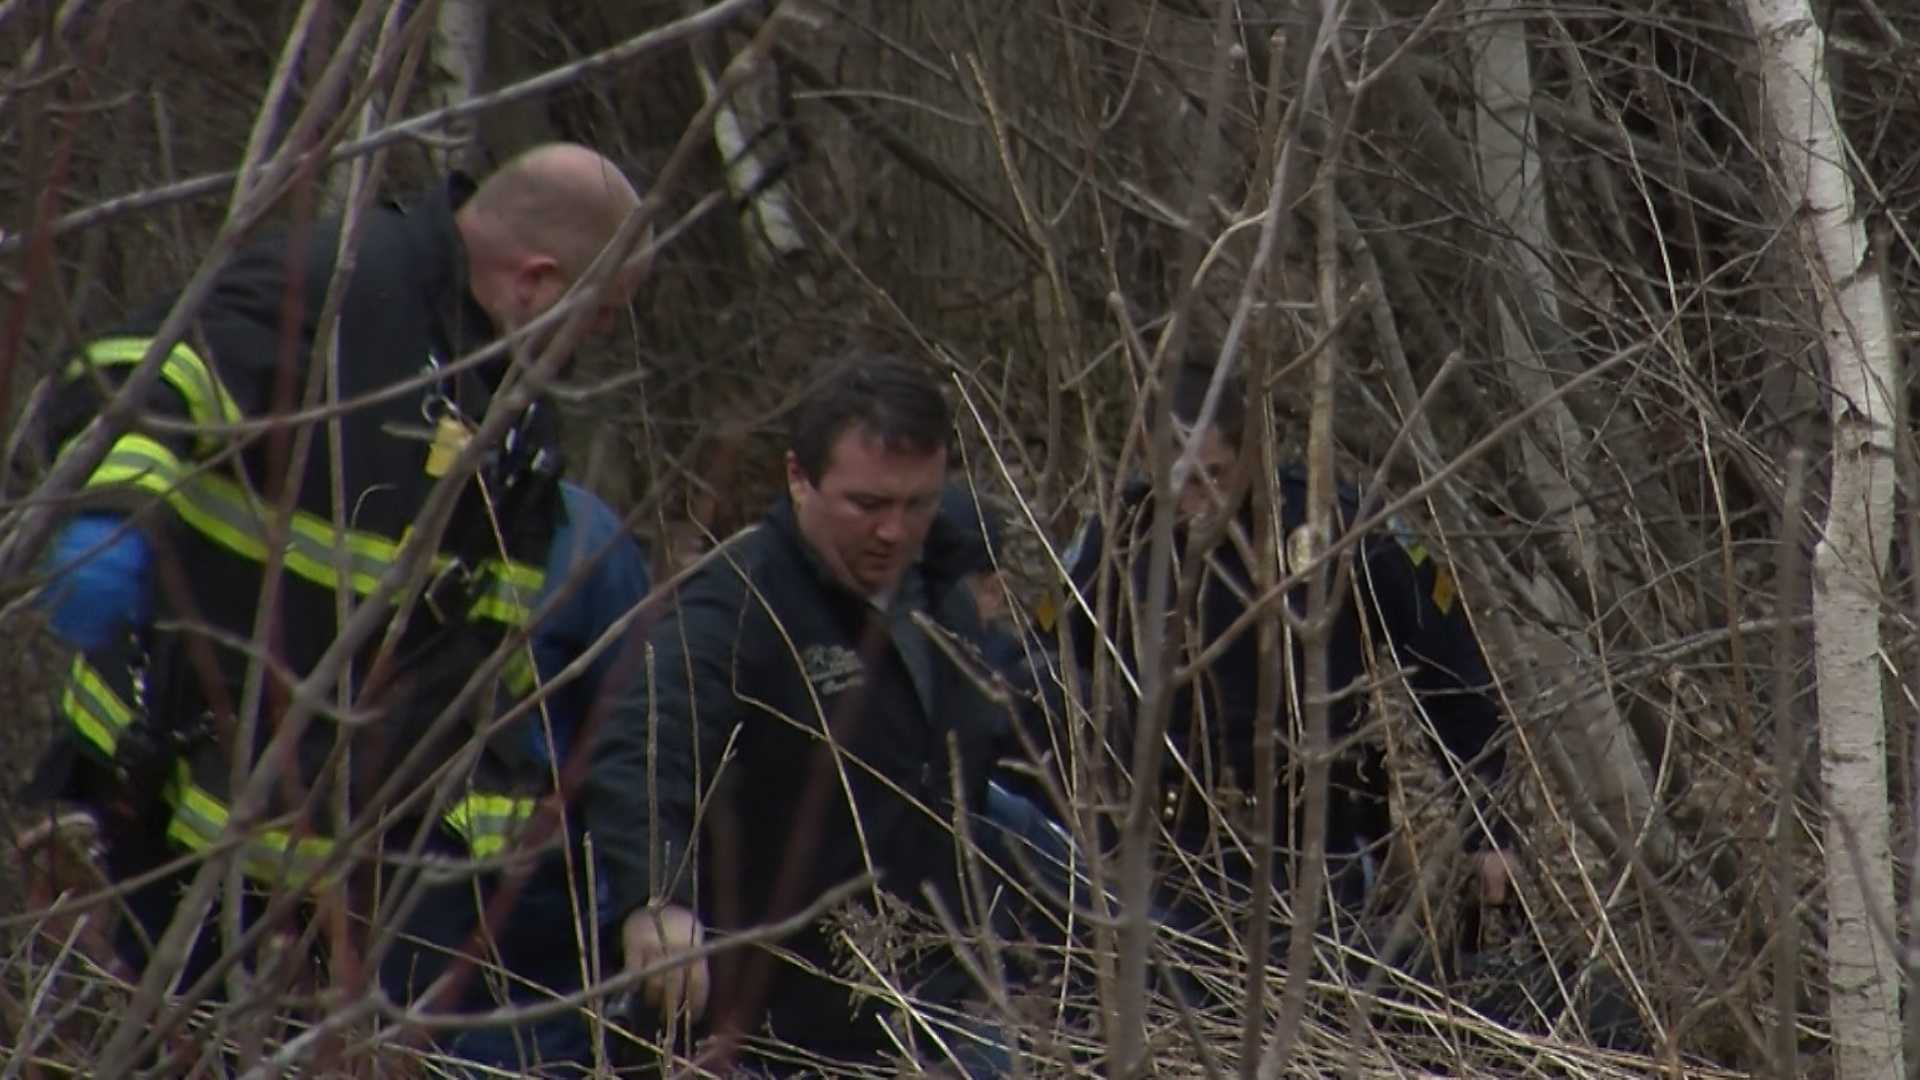 Police are on the scene in a wooded section of East Commerce Way in Williston, where a body was found.